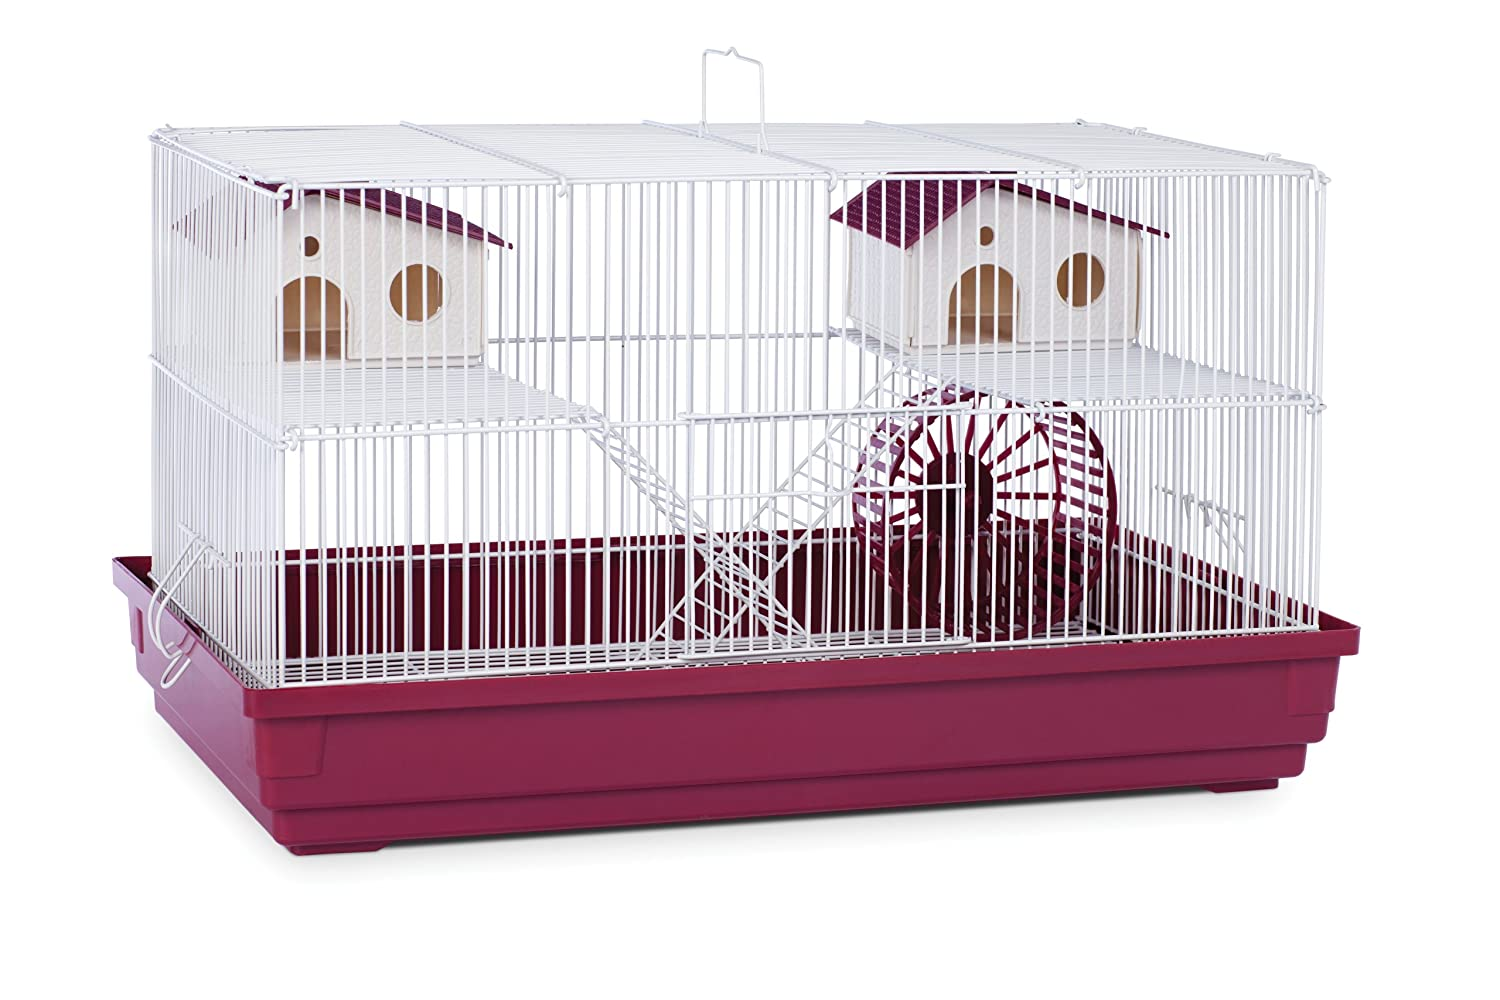 amazoncom prevue hendryx sp2060r deluxe hamster and gerbil cage bordeaux red pet cages pet supplies